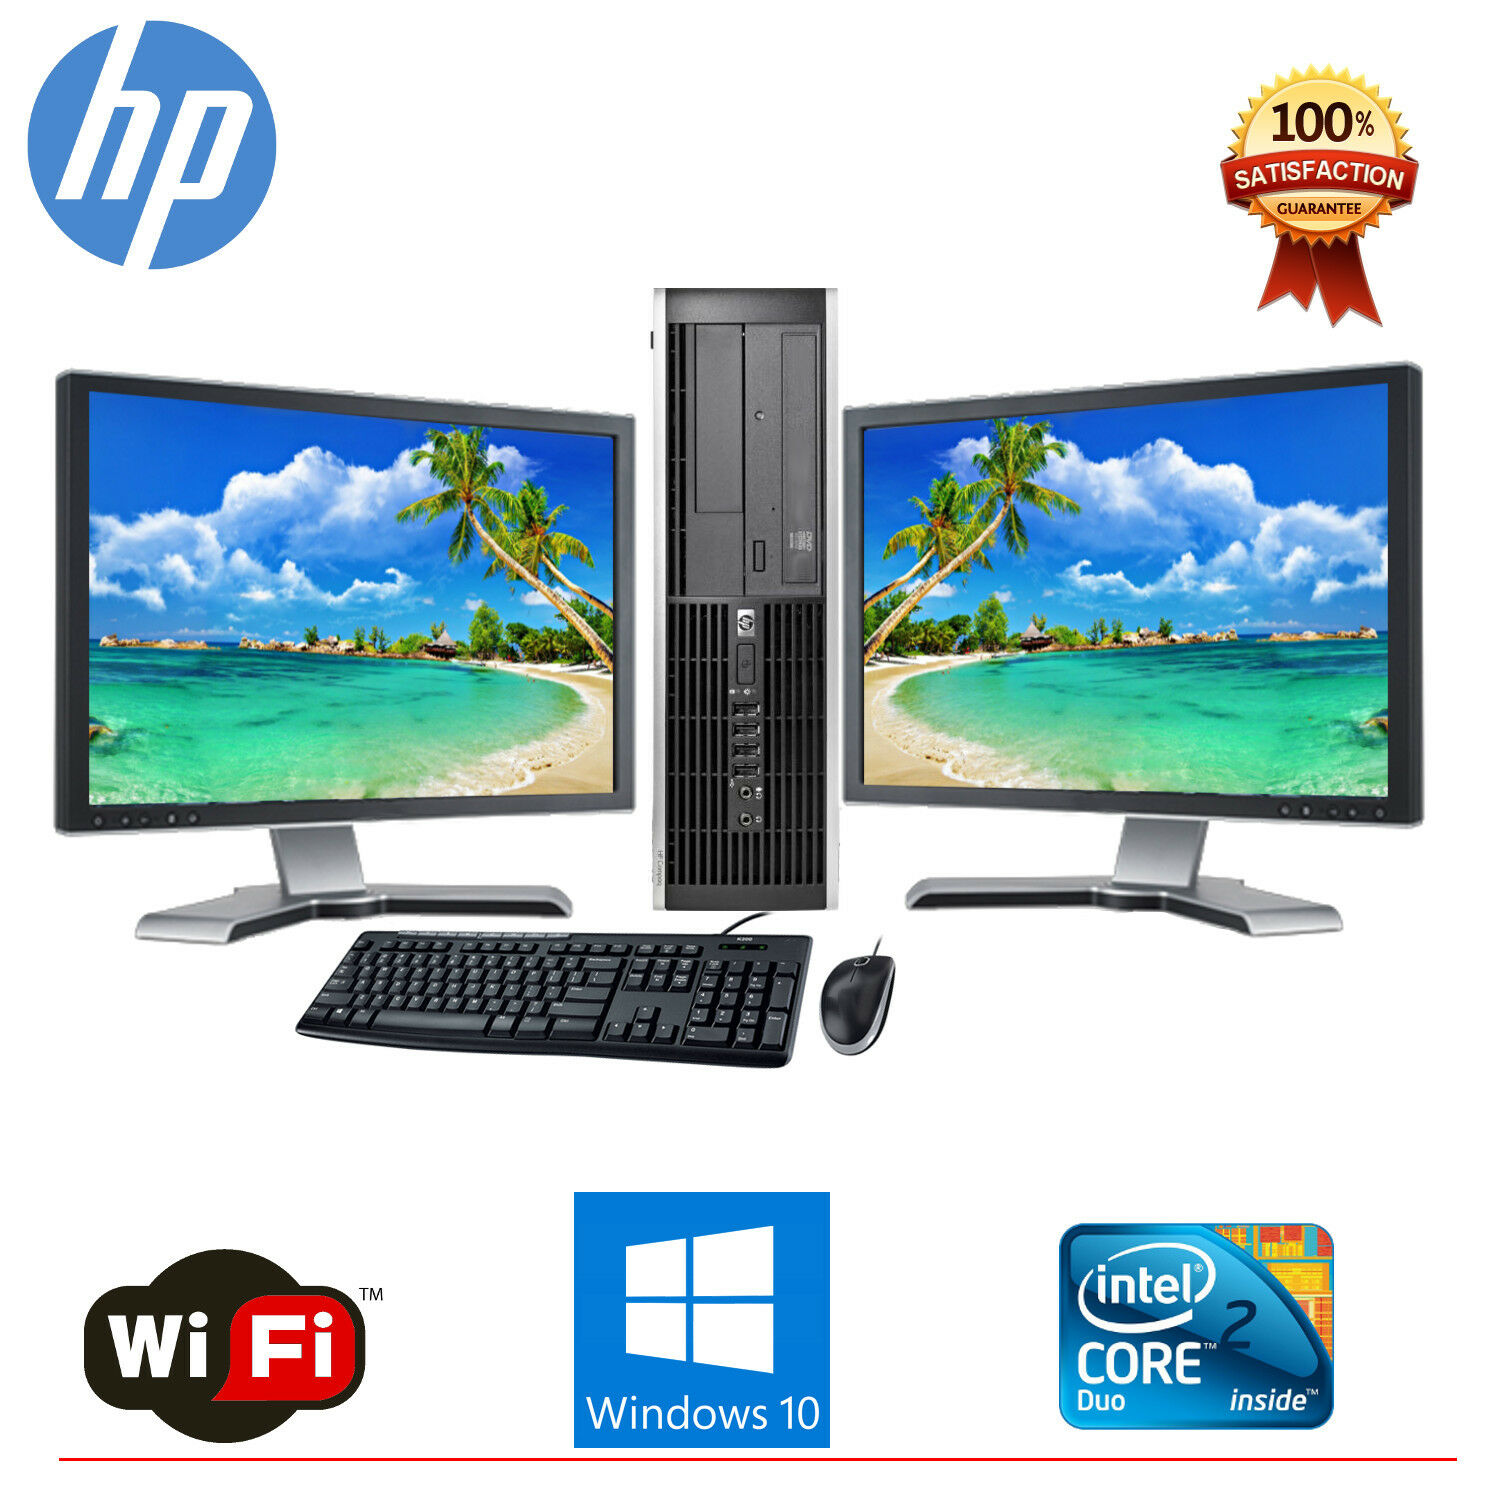 hp desktop pc computer core 2 duo 4gb ram dual 19 lcd monitor wifi windows 10 ebay. Black Bedroom Furniture Sets. Home Design Ideas